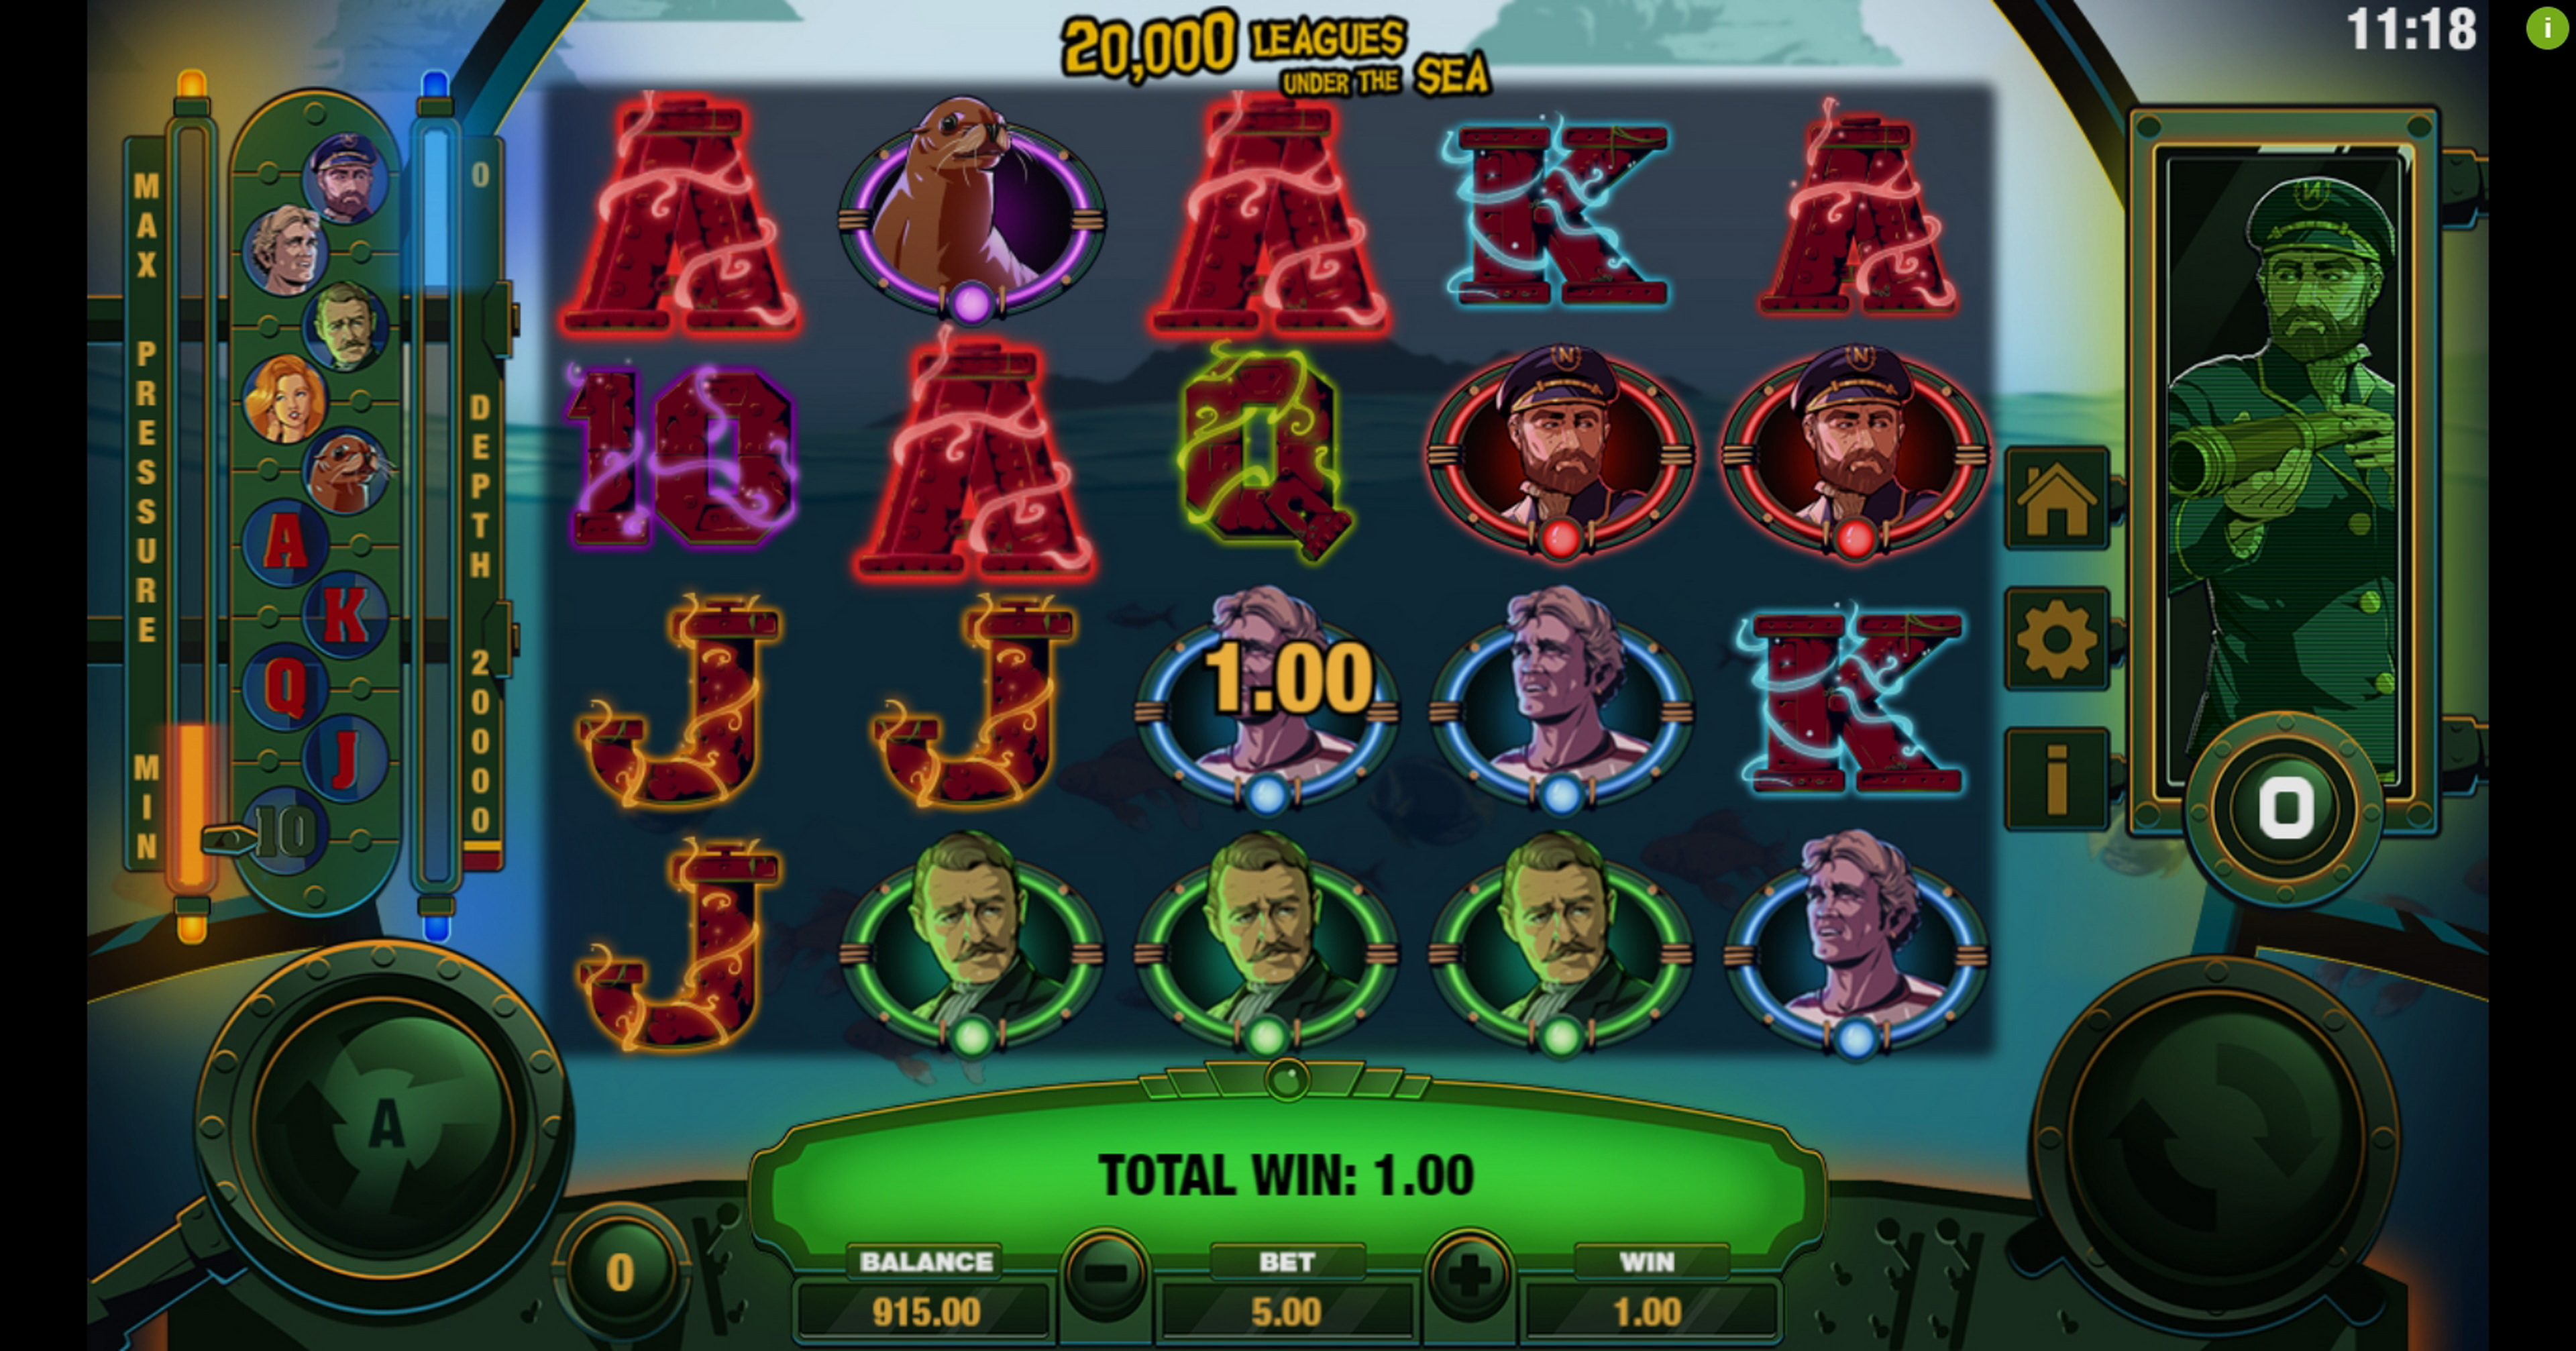 Win Money in 20000 Leagues Under The Sea Free Slot Game by Probability Jones